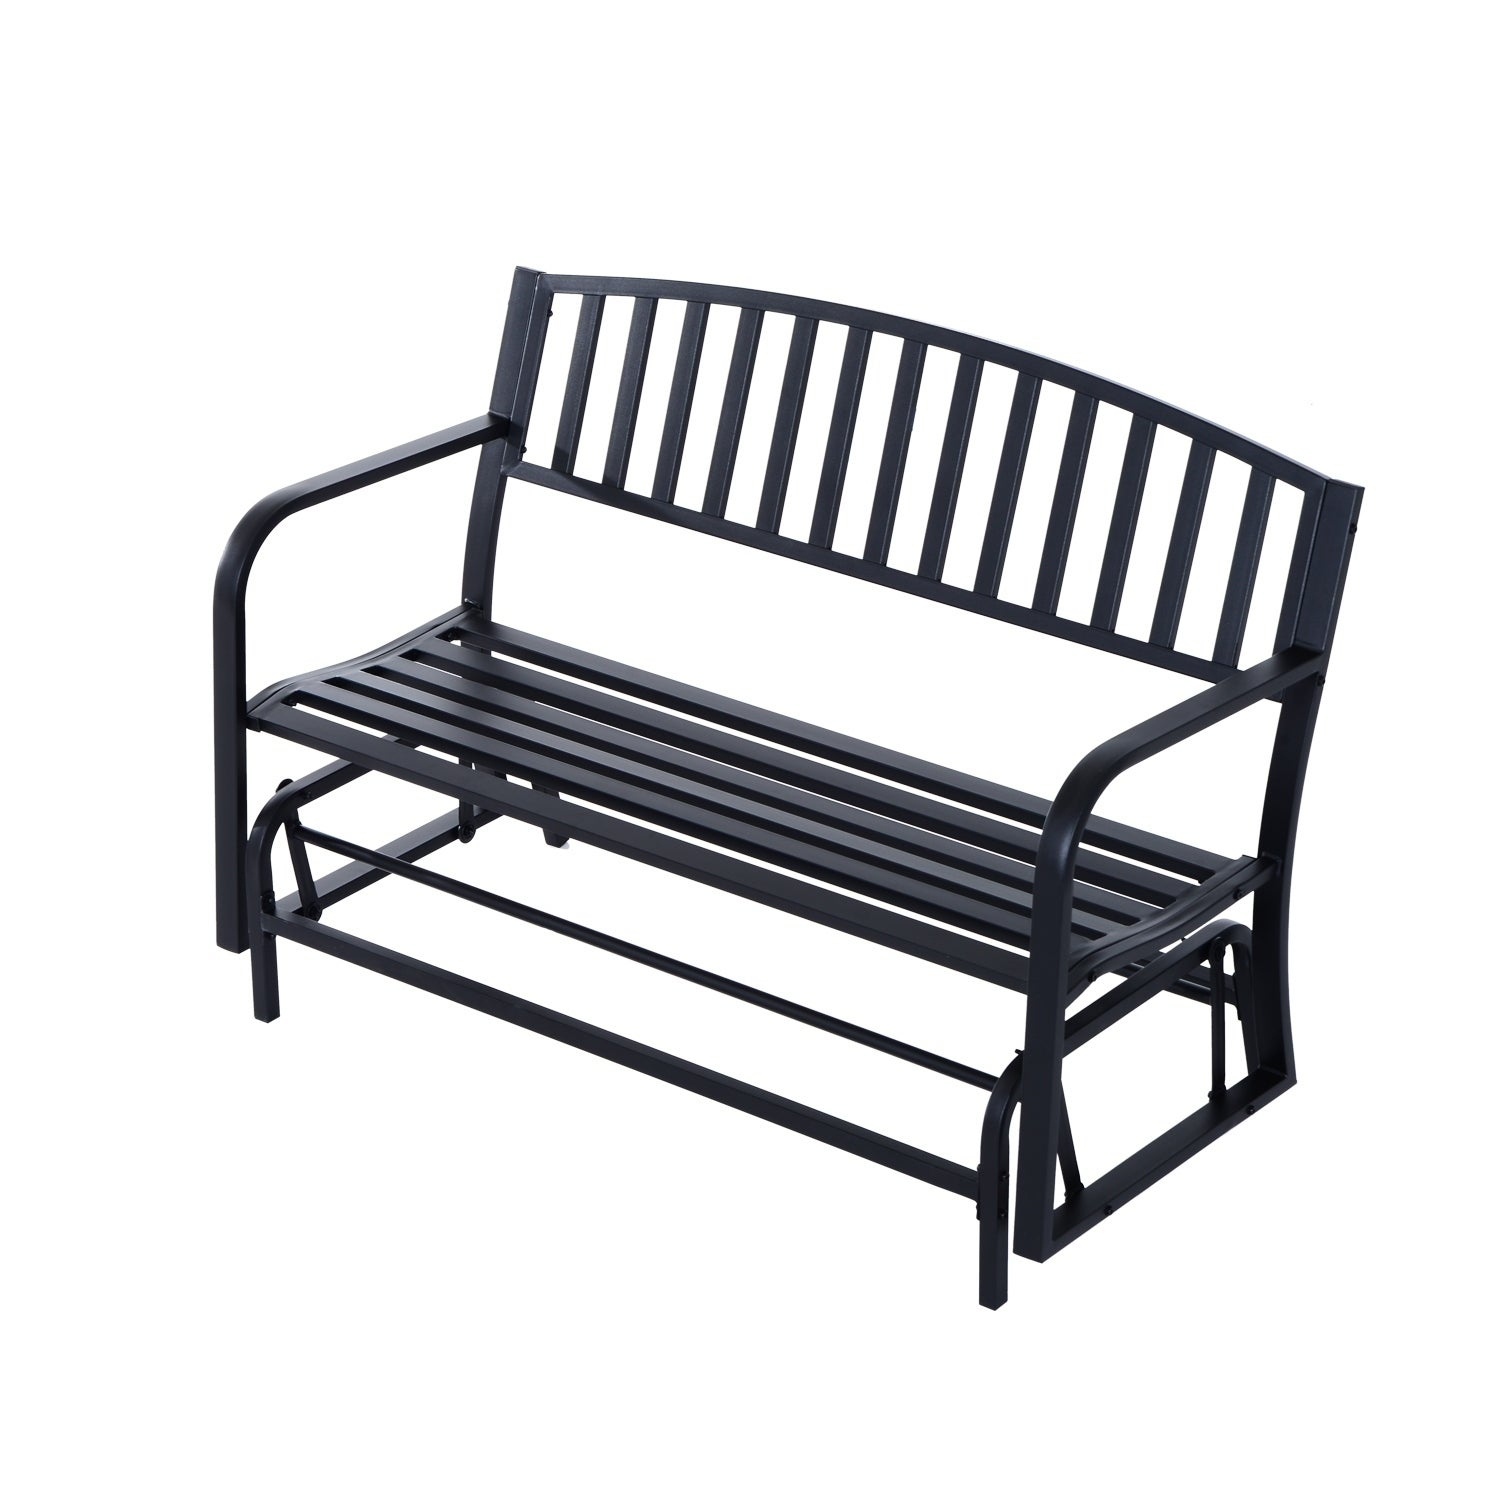 Outsunny 50 Inch Outdoor Steel Patio Swing Glider Bench – Black With Regard To 1 Person Antique Black Steel Outdoor Gliders (View 4 of 25)